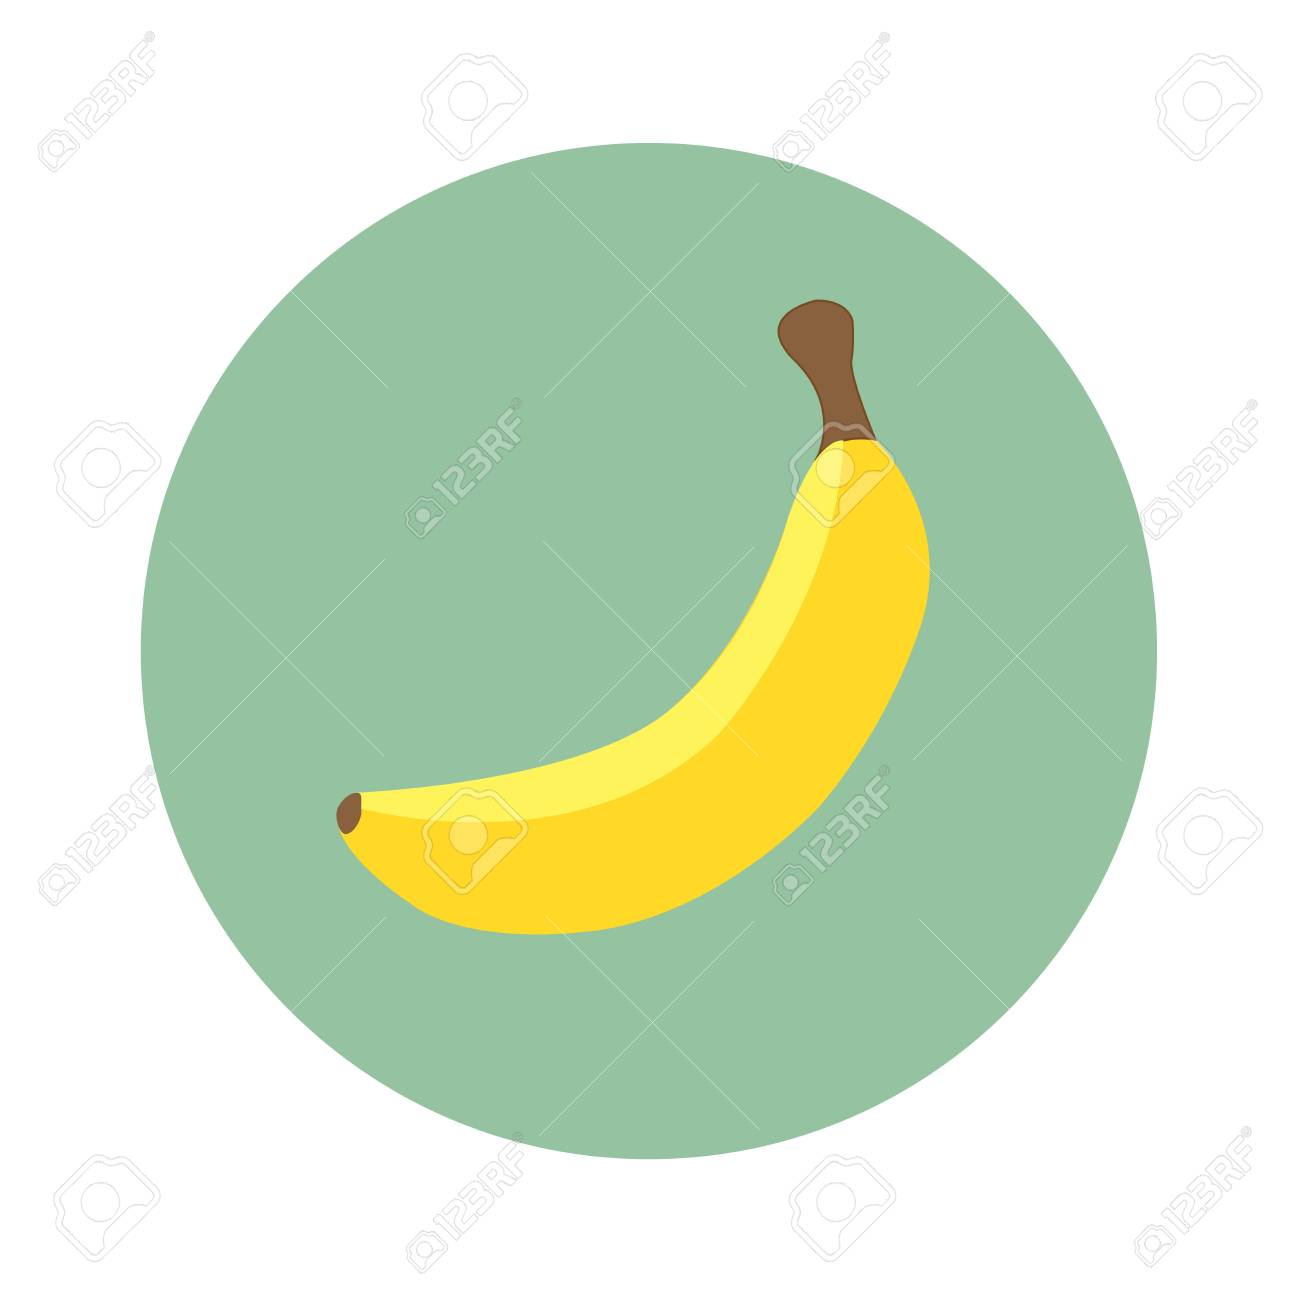 Banana Design Pictures